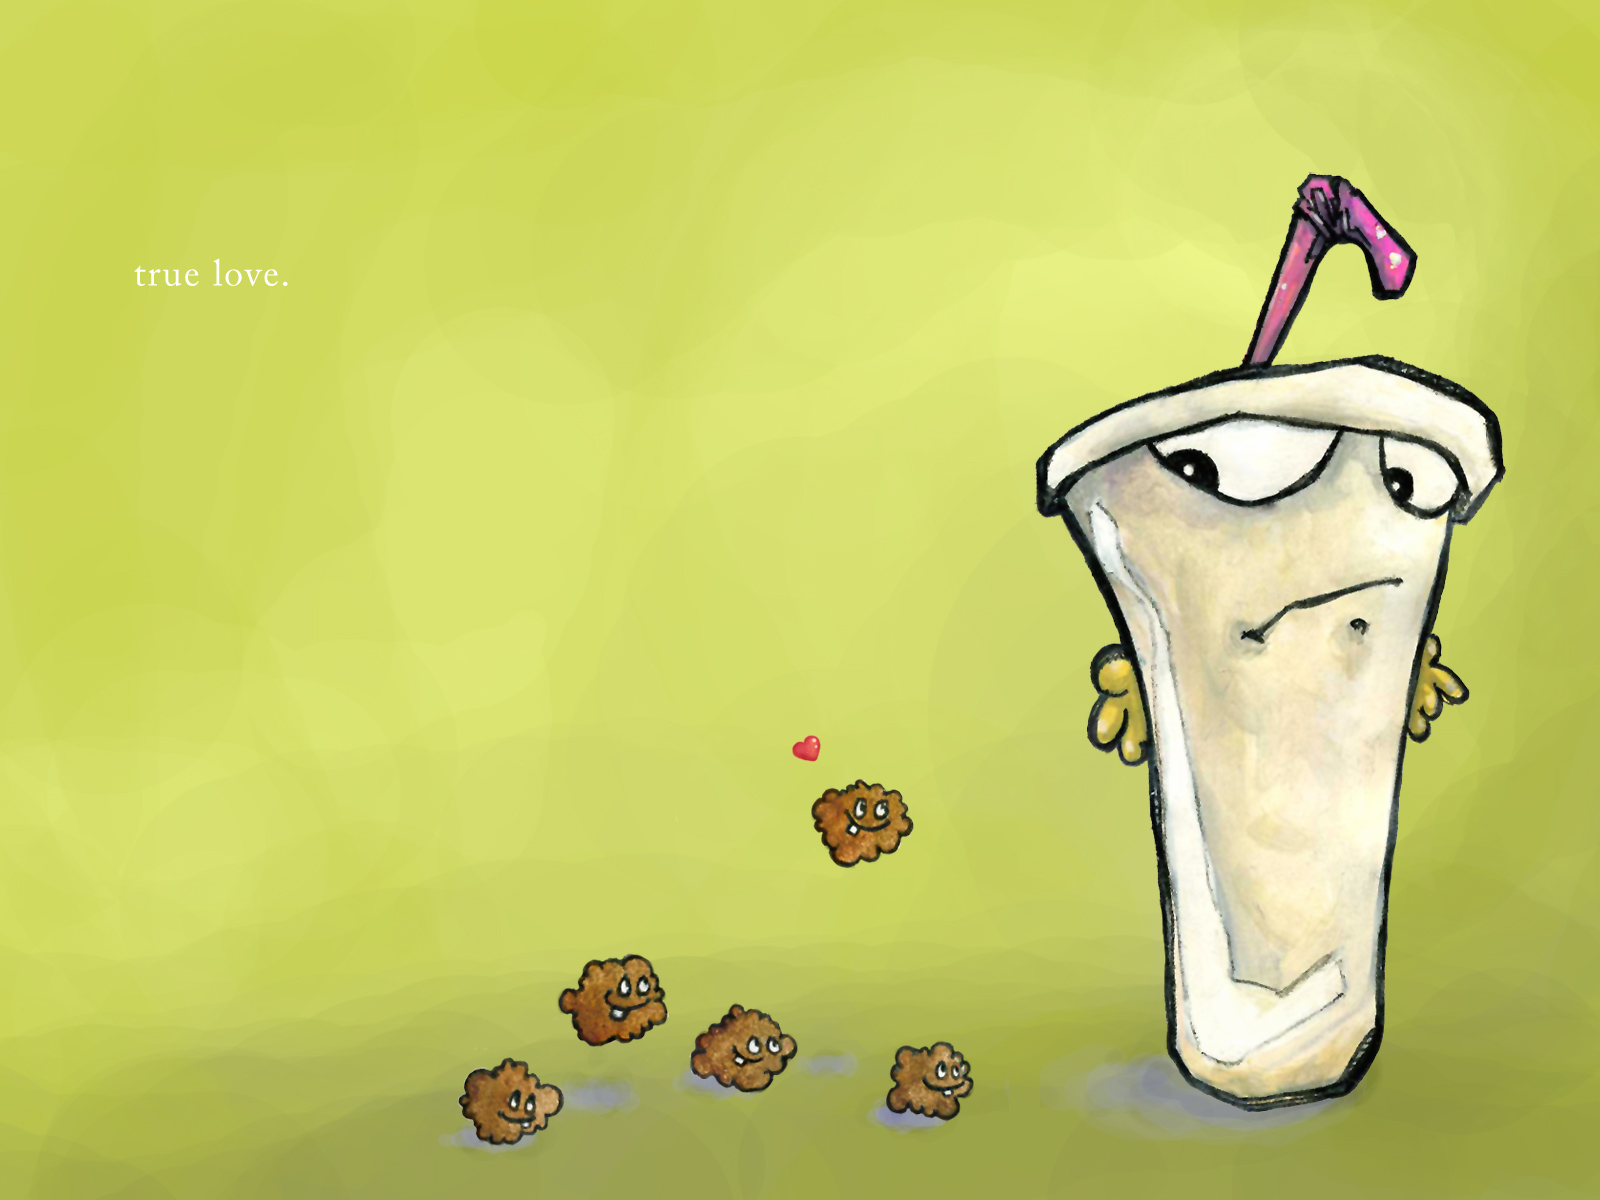 Aqua Teen Hunger Force Computer Wallpapers, Desktop